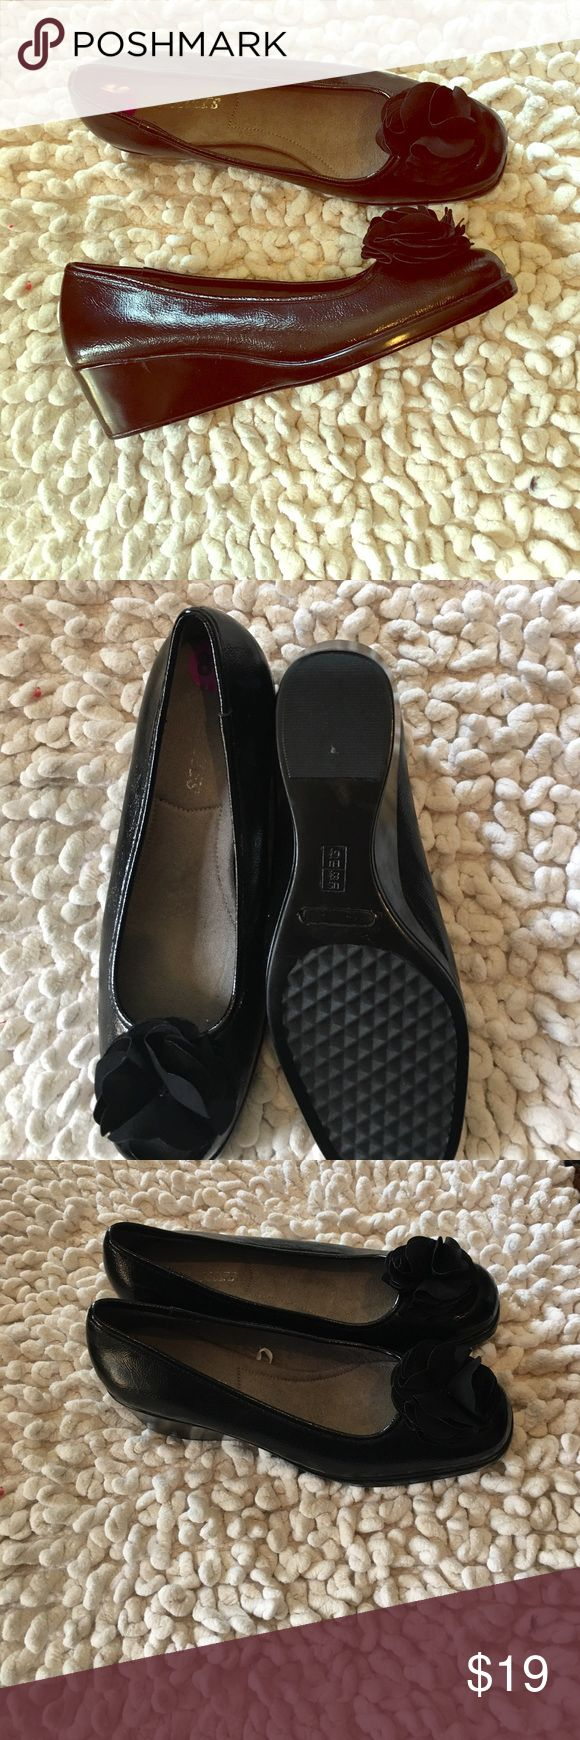 Aerosoles low wedge loafer A low wedged heel loafer by Aerosoles... like new.. excellent condition.. AEROSOLES Shoes Flats & Loafers